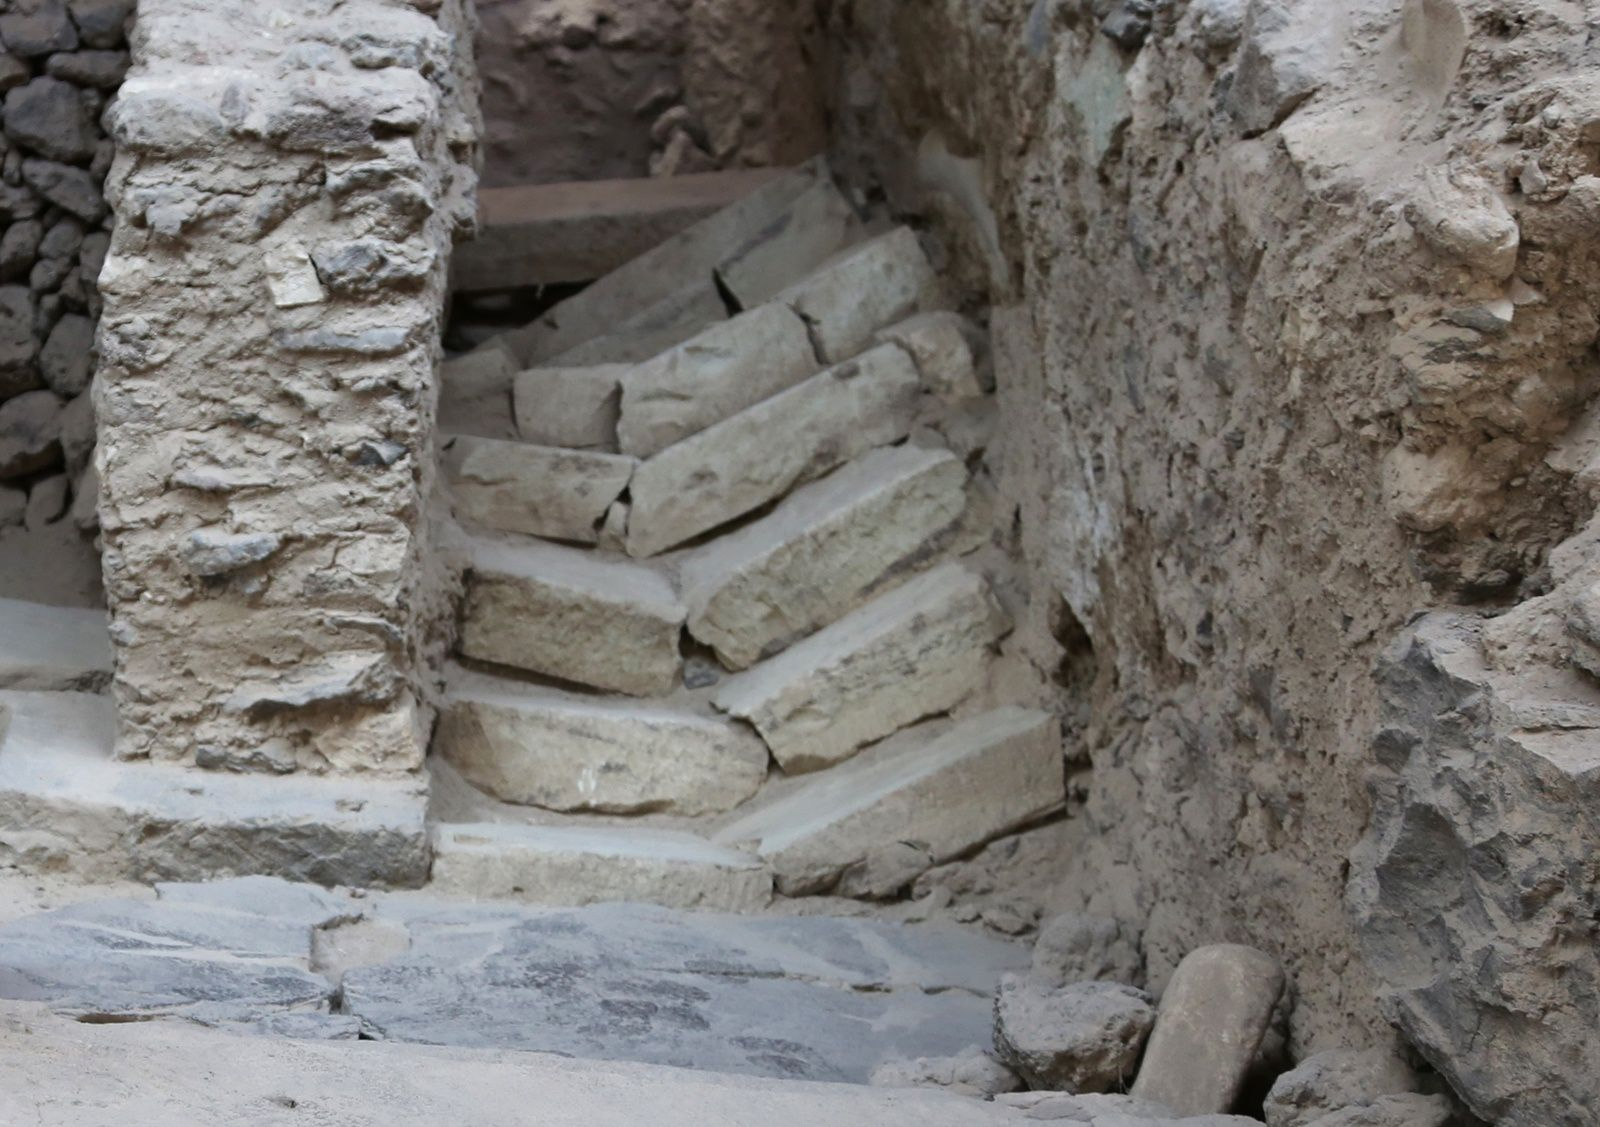 Santorini - archaeological site of Akrotiri - broken stairs in the delta complex of excavations - photo © Bernard Duyck 09.2019